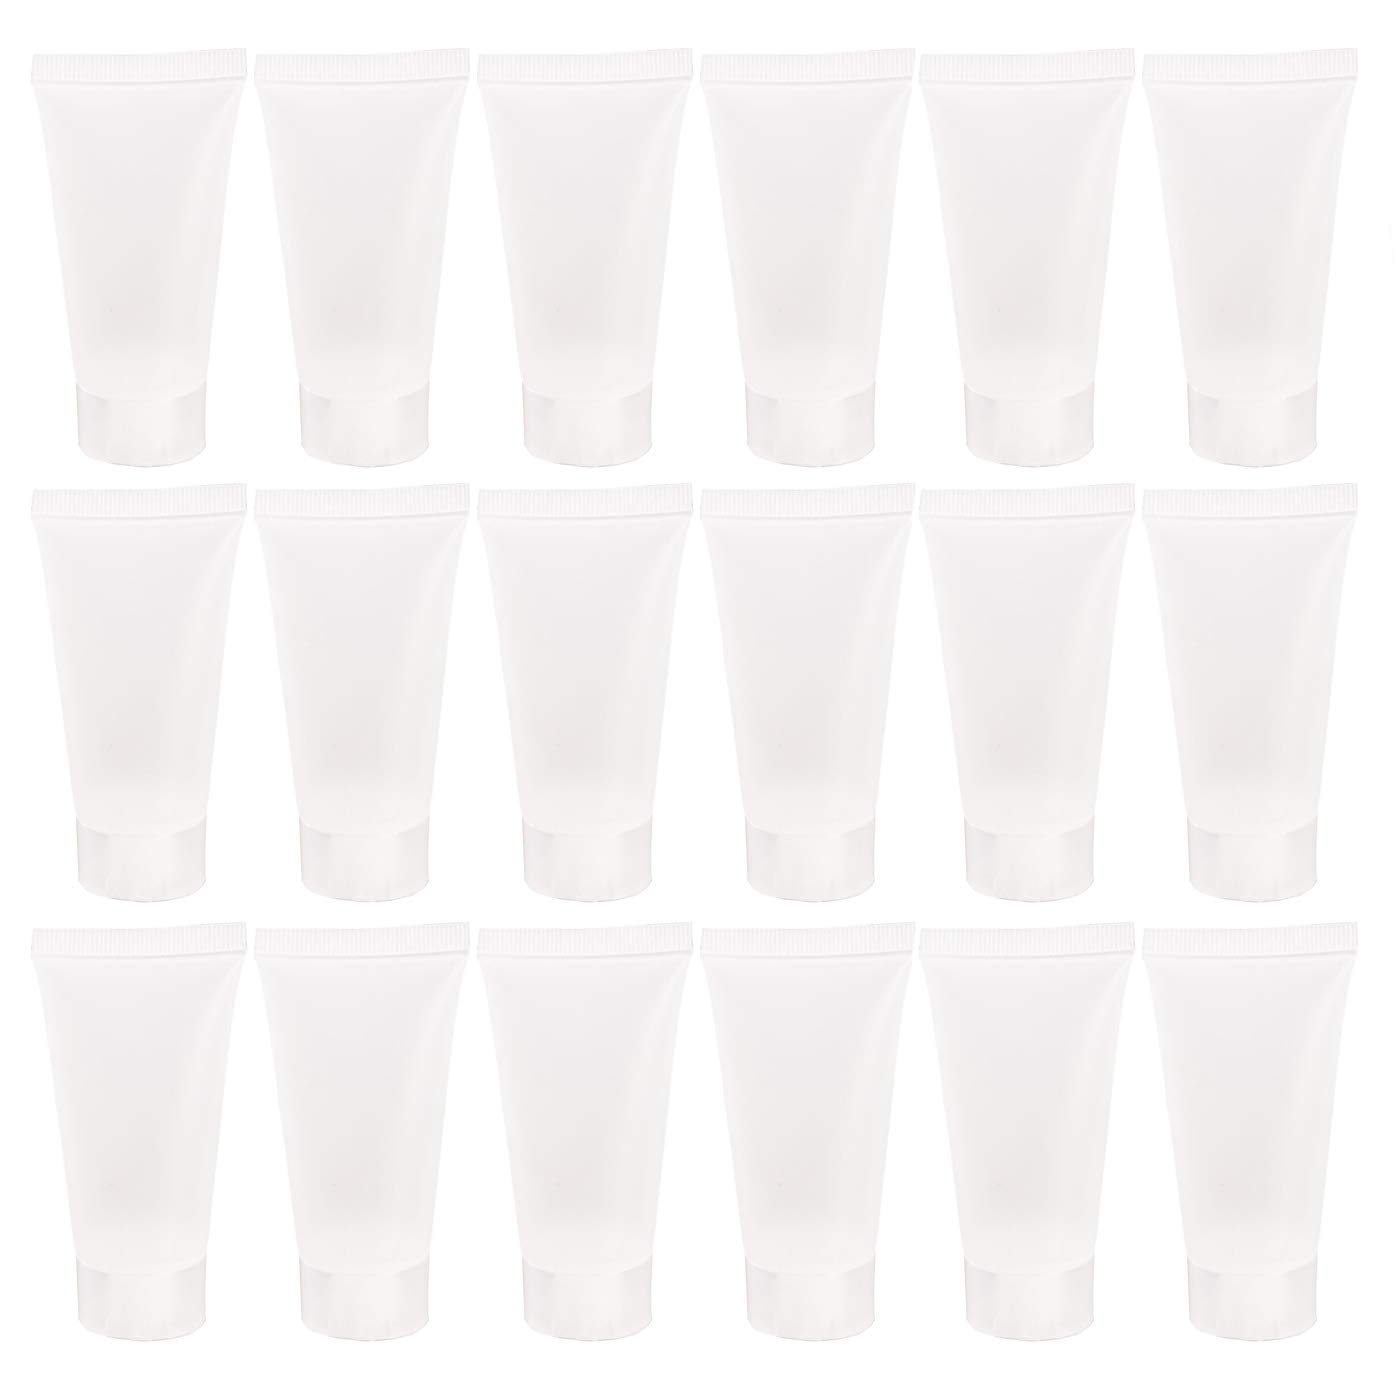 20PCS Emply Refillable Plastic Cosmetic Sott Tube Vial Bottles with Screw Cover Makeup Travel Sample Packing Storage Holder Container for Toothpaste Shampoo Facial Cleanser Body Lotion (5ml/0.17oz)